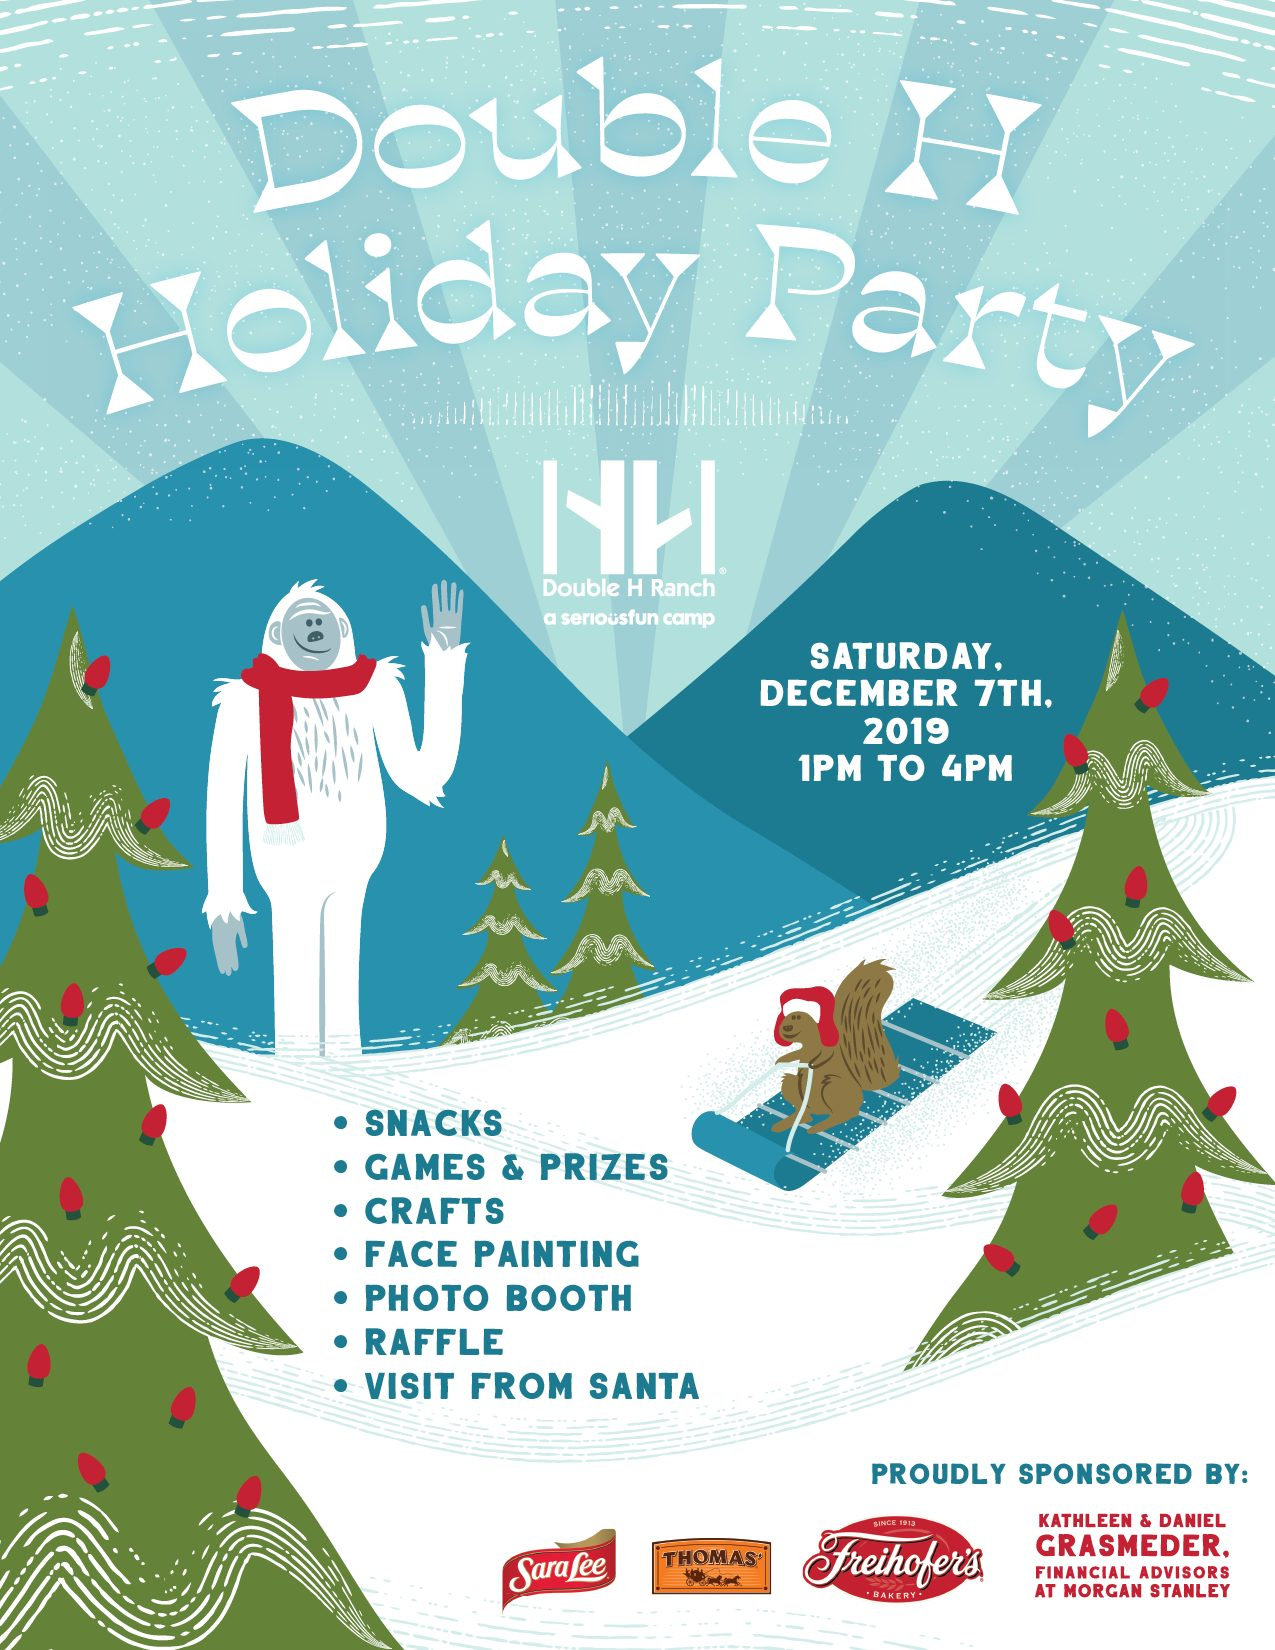 holiday party graphic with activities and snowman